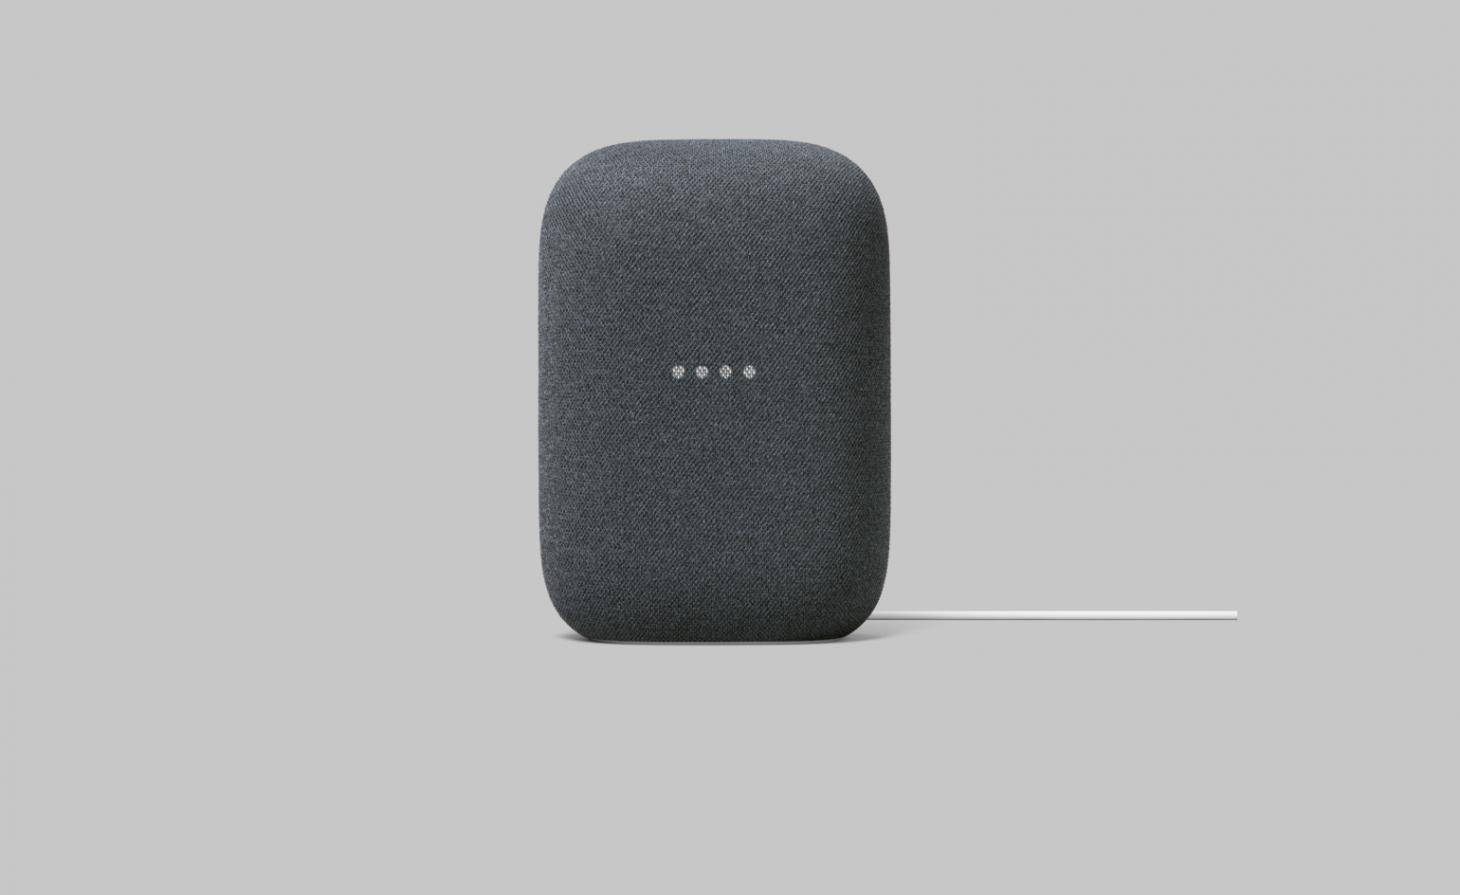 Google Nest Audiio in charcoal